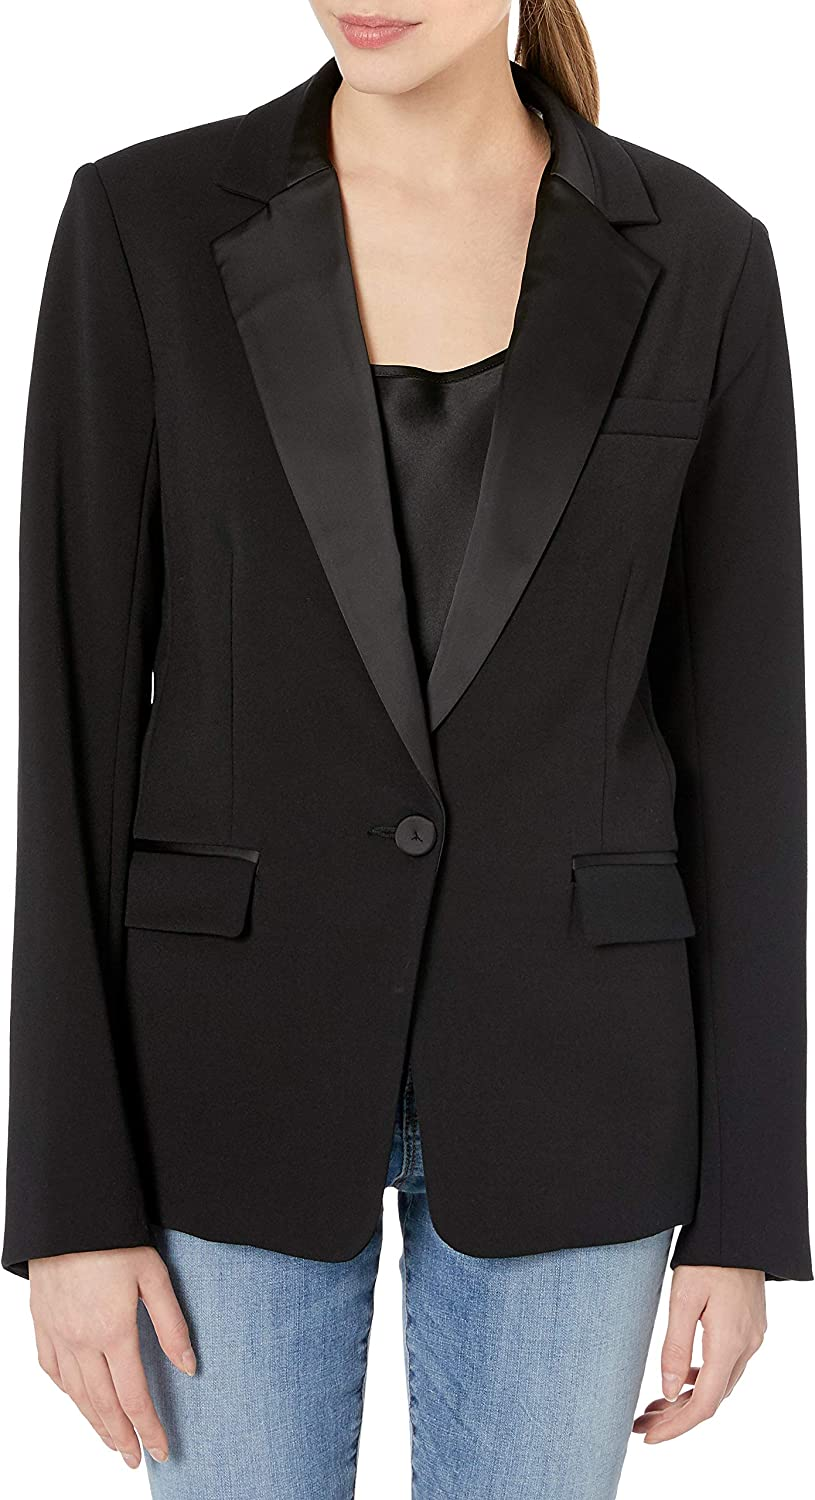 Bailey 44 Women's Chic Tailored Blazer with Satin Lapel and Pocket Detailing